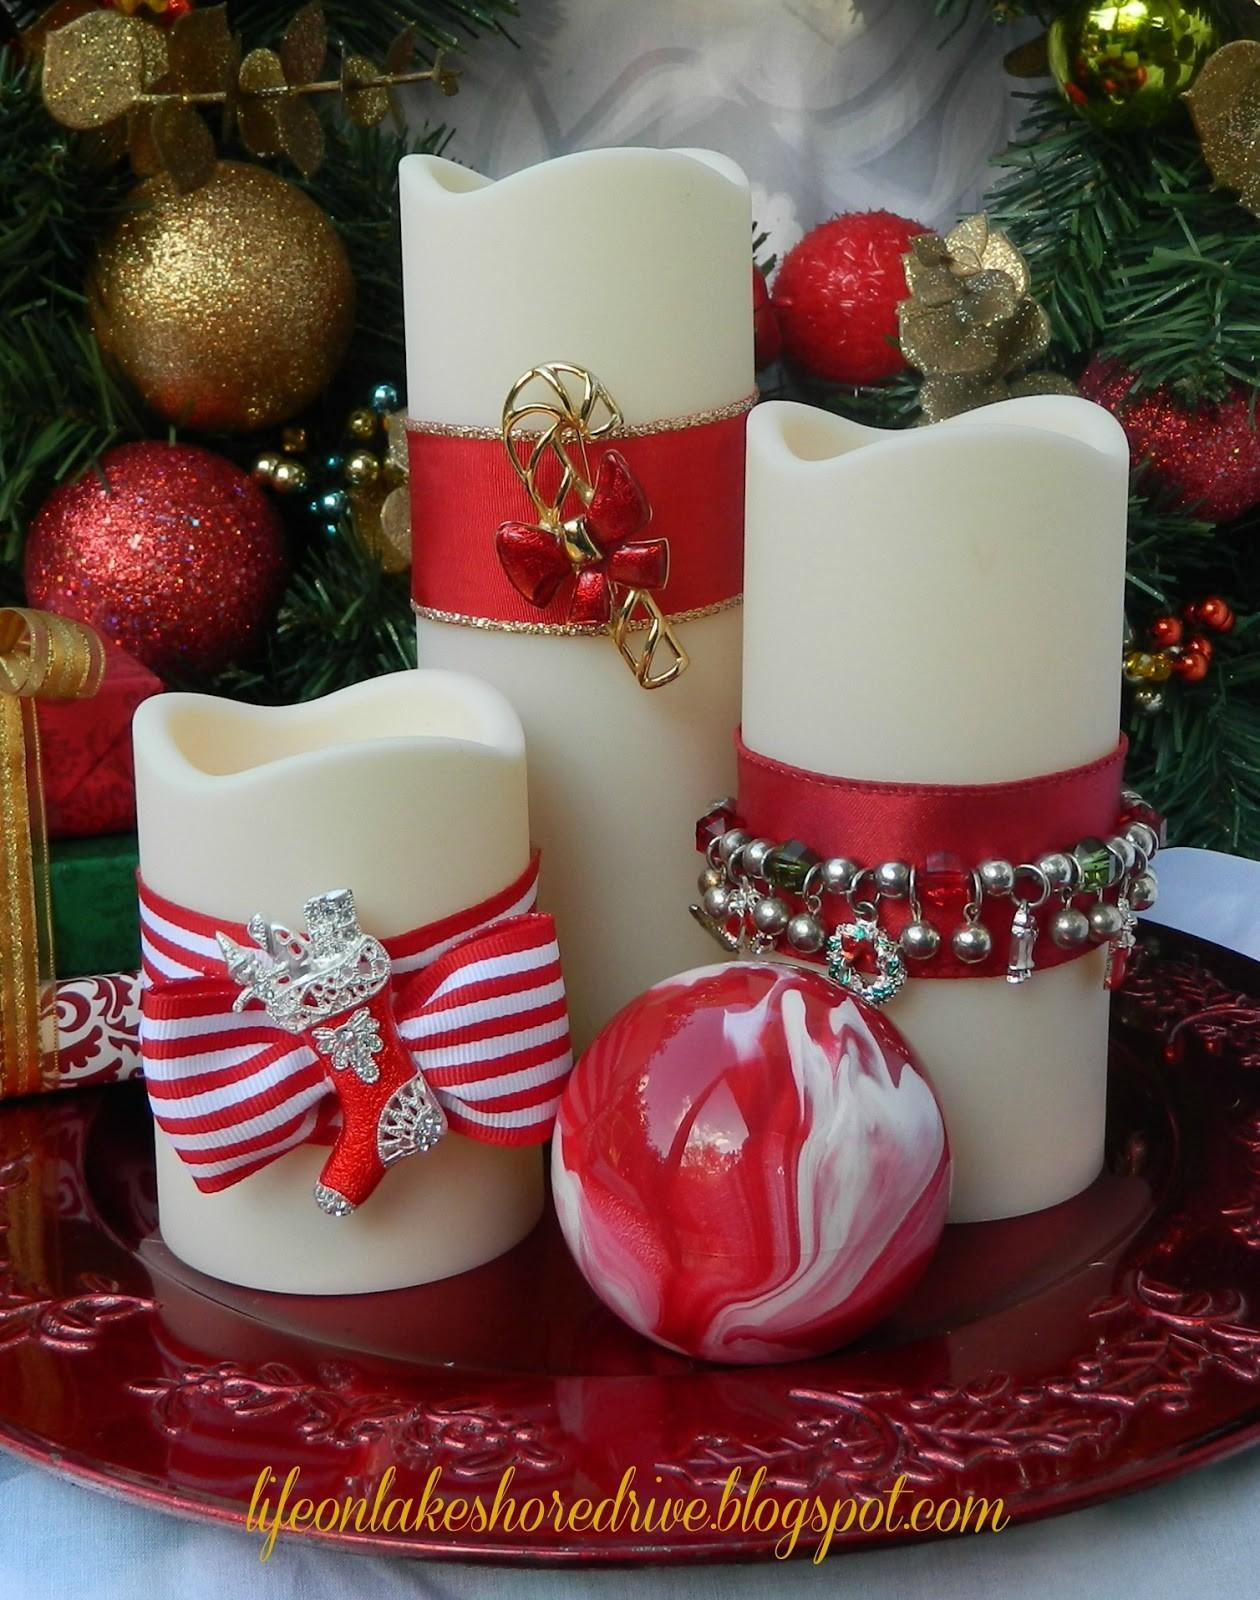 Diy Christmas Jewelry Candles Life Lakeshore Drive